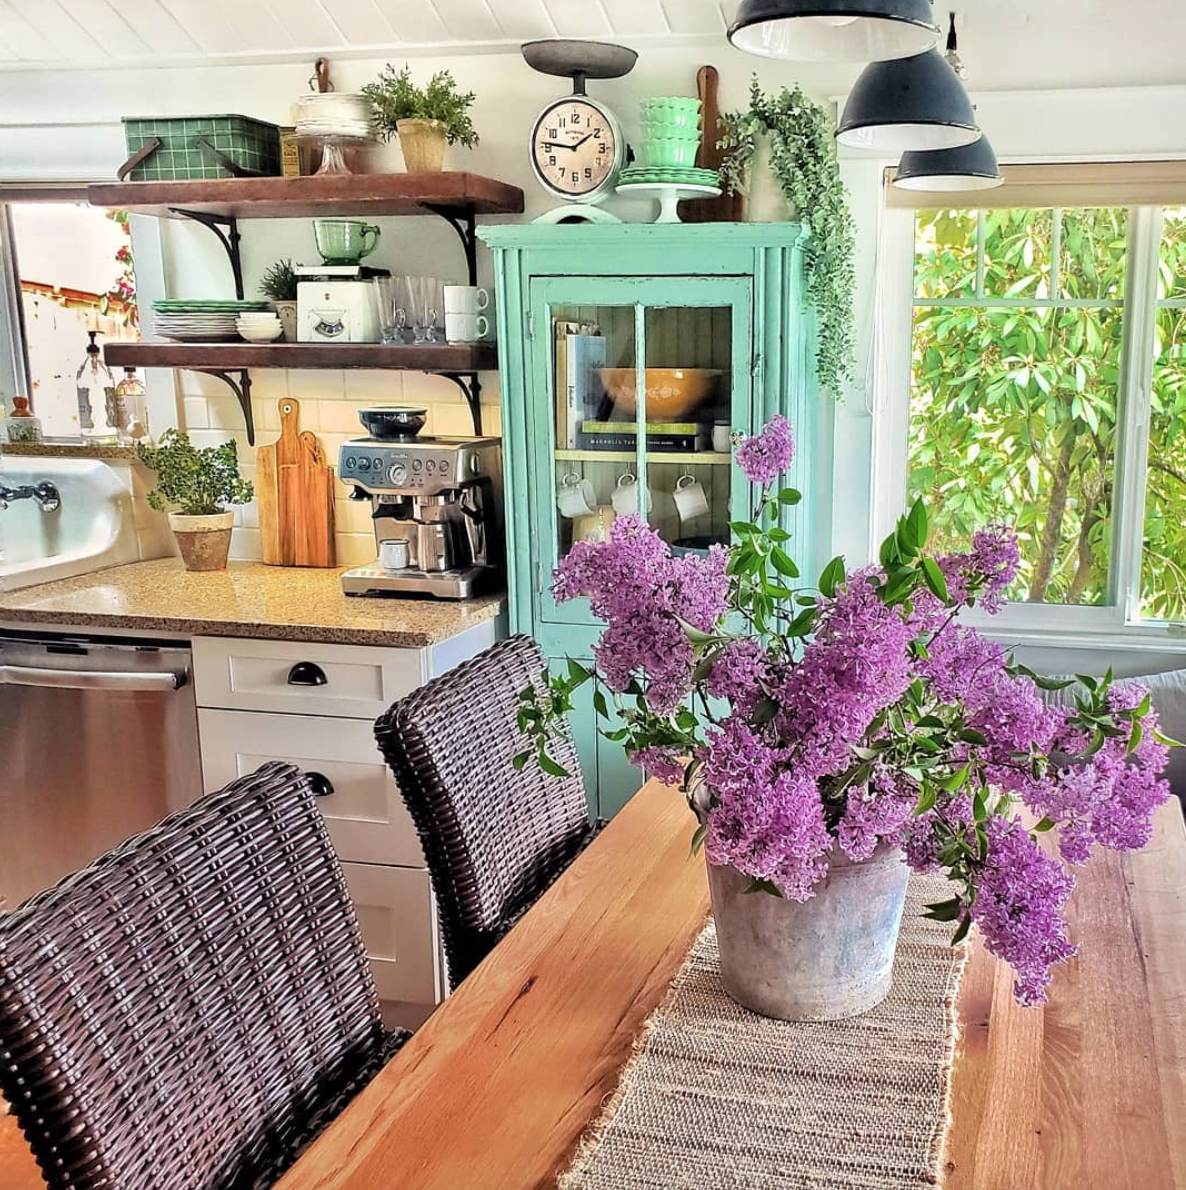 Kim Robinson and her husband have spent the past 8 years renovating their 100-year-old Gig Harbor area home. She started posting photos of her gorgeous space on Instagram - and quickly became a social media sensation. (Photo: Kim Robinson/Shiplap and Shells)